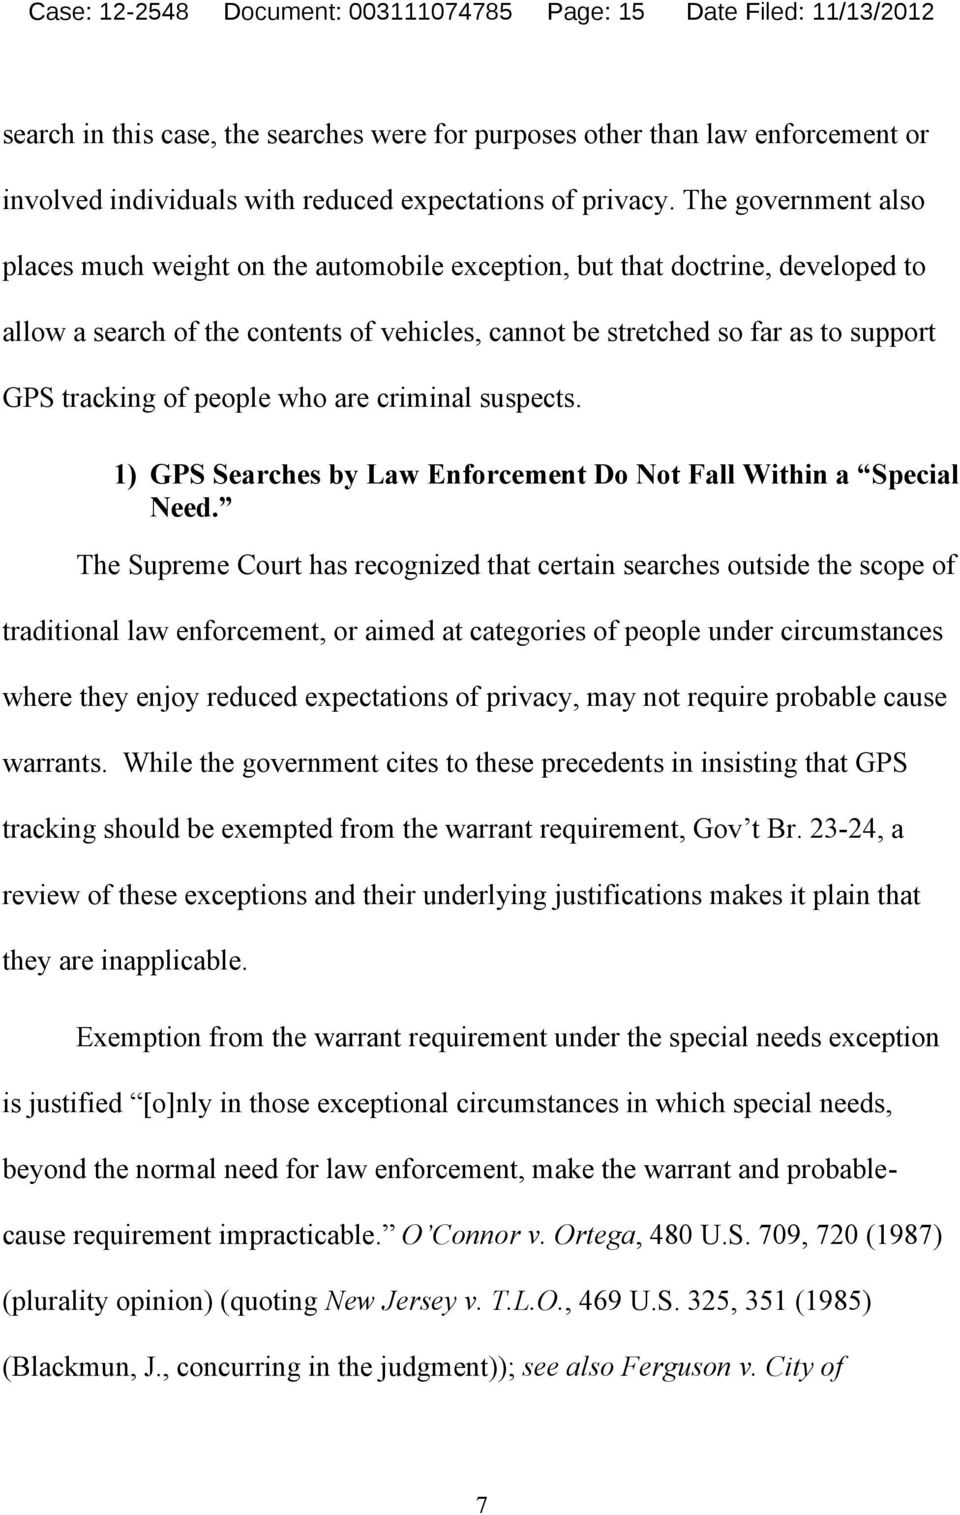 The government also places much weight on the automobile exception, but that doctrine, developed to allow a search of the contents of vehicles, cannot be stretched so far as to support GPS tracking